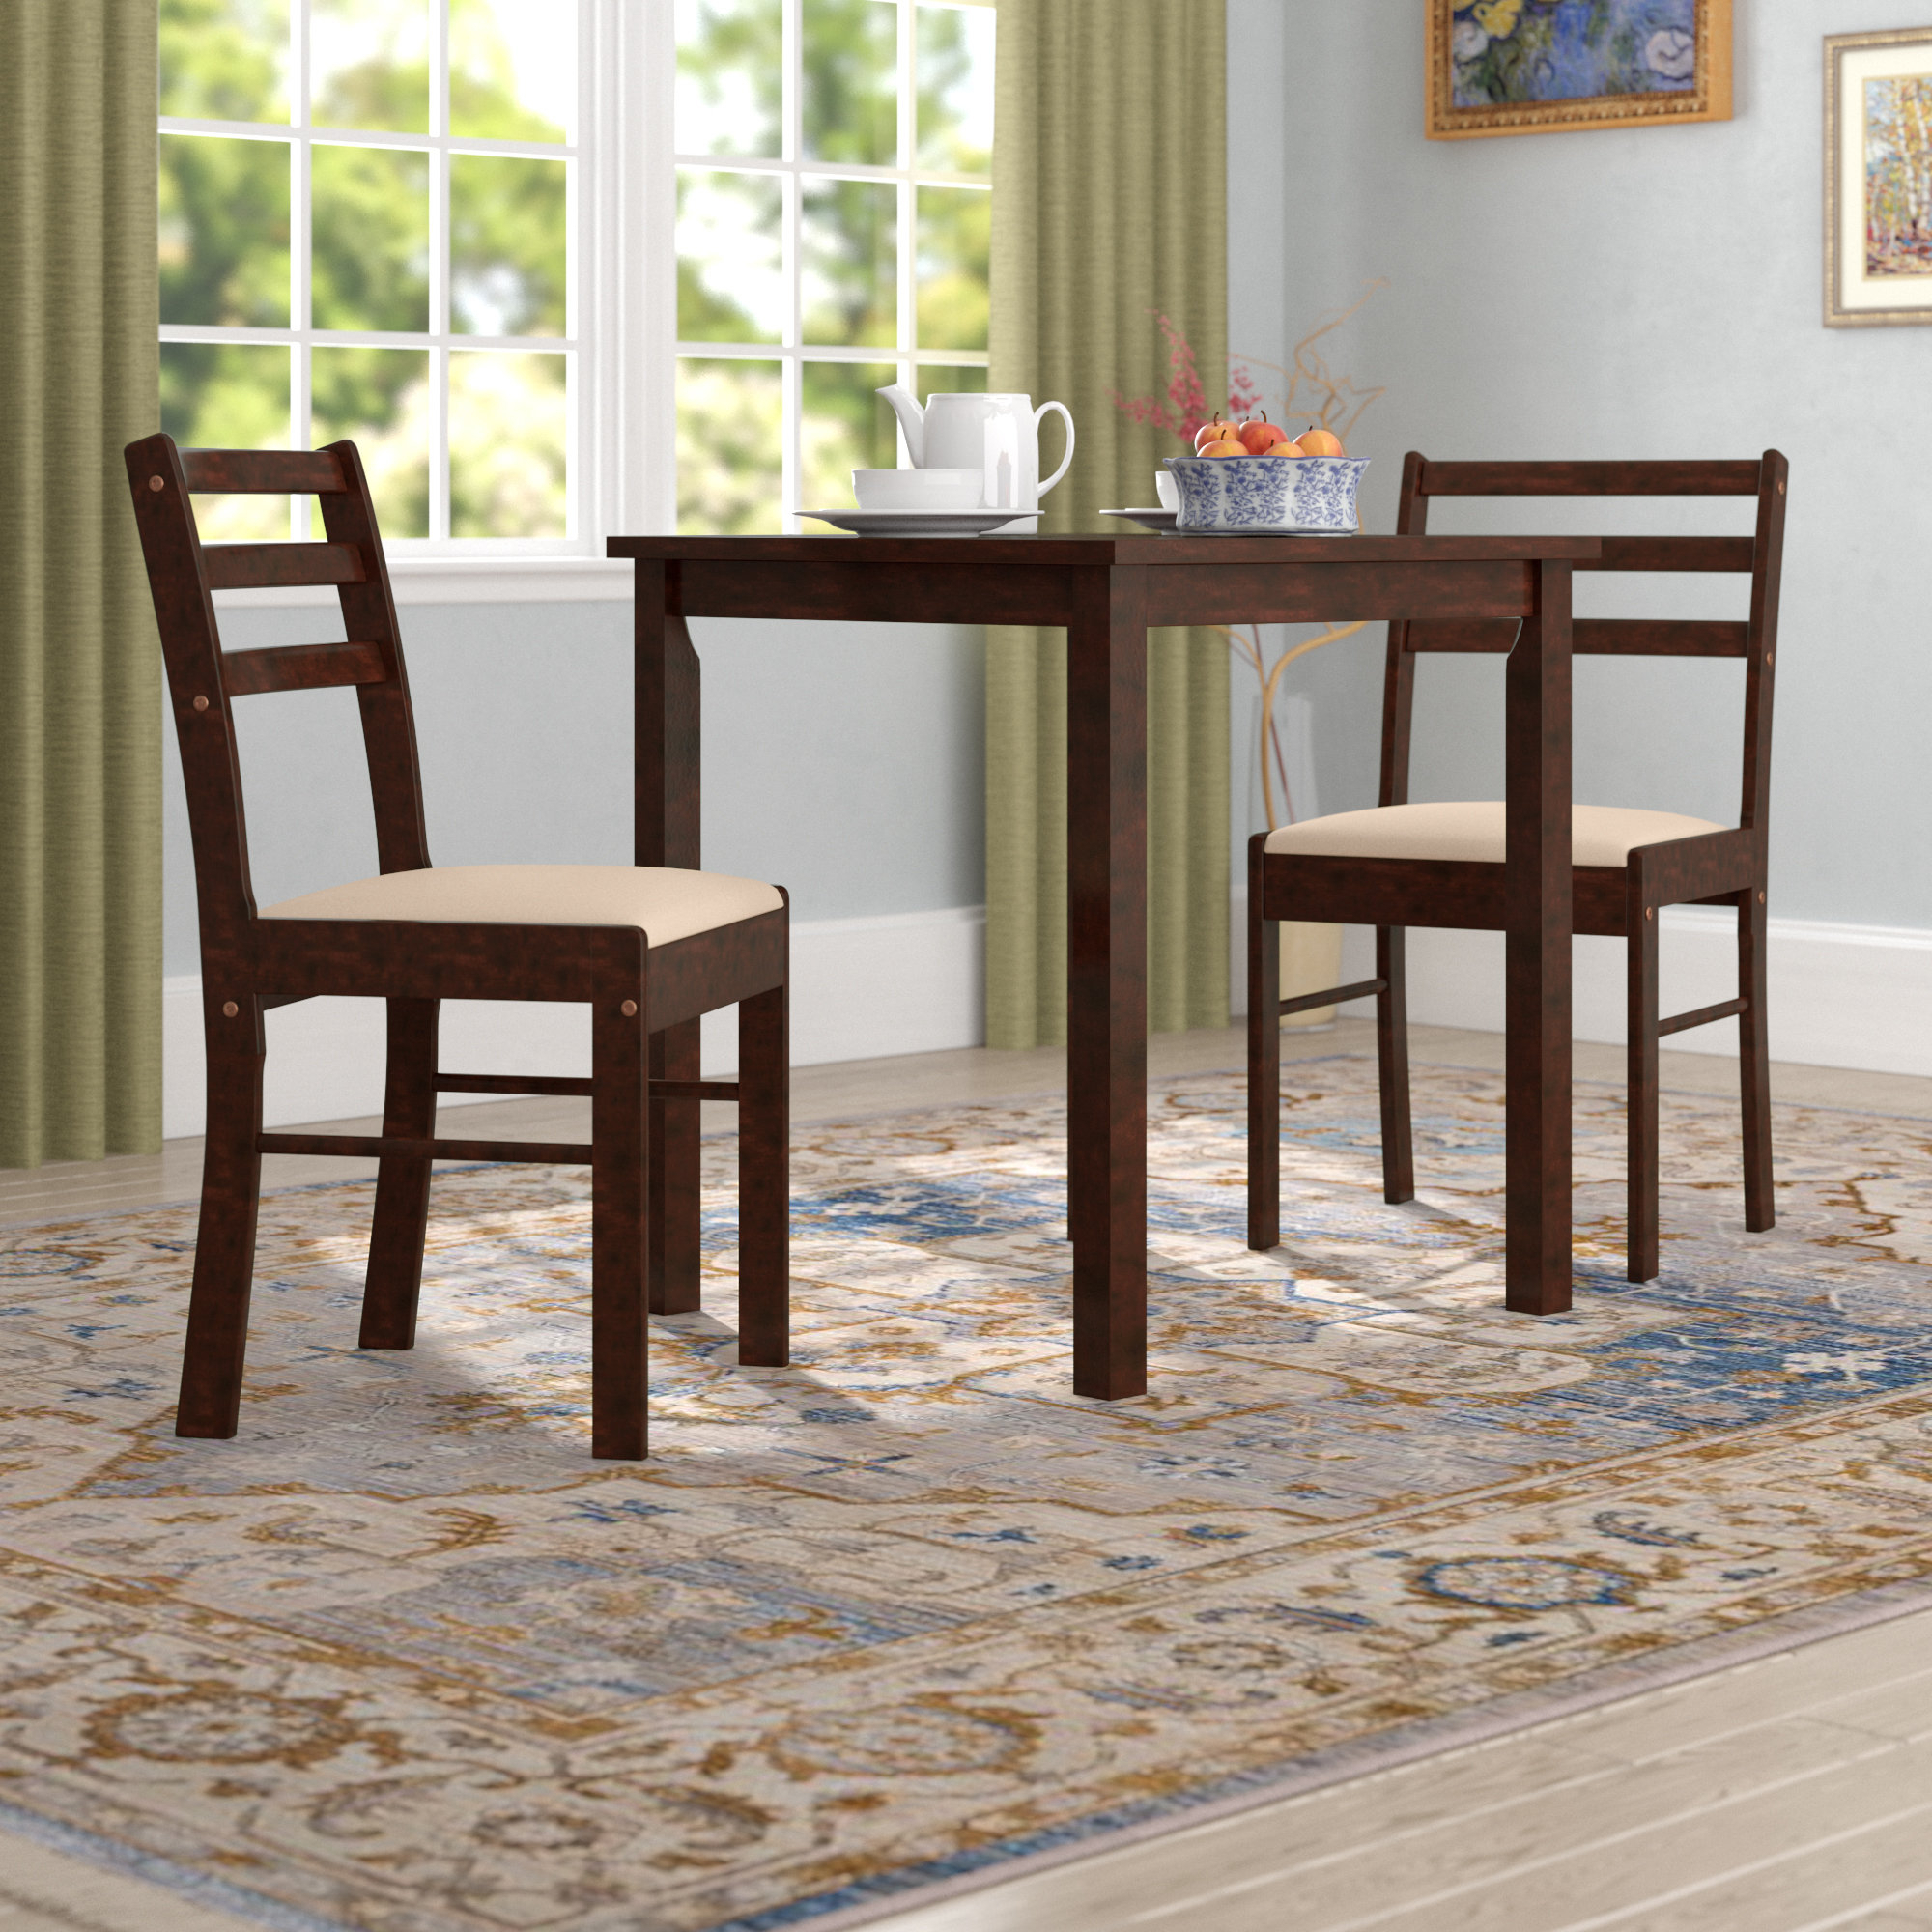 Clinger Pilaster Designs 3 Piece Dining Set Regarding Most Recently Released Kinsler 3 Piece Bistro Sets (View 10 of 20)